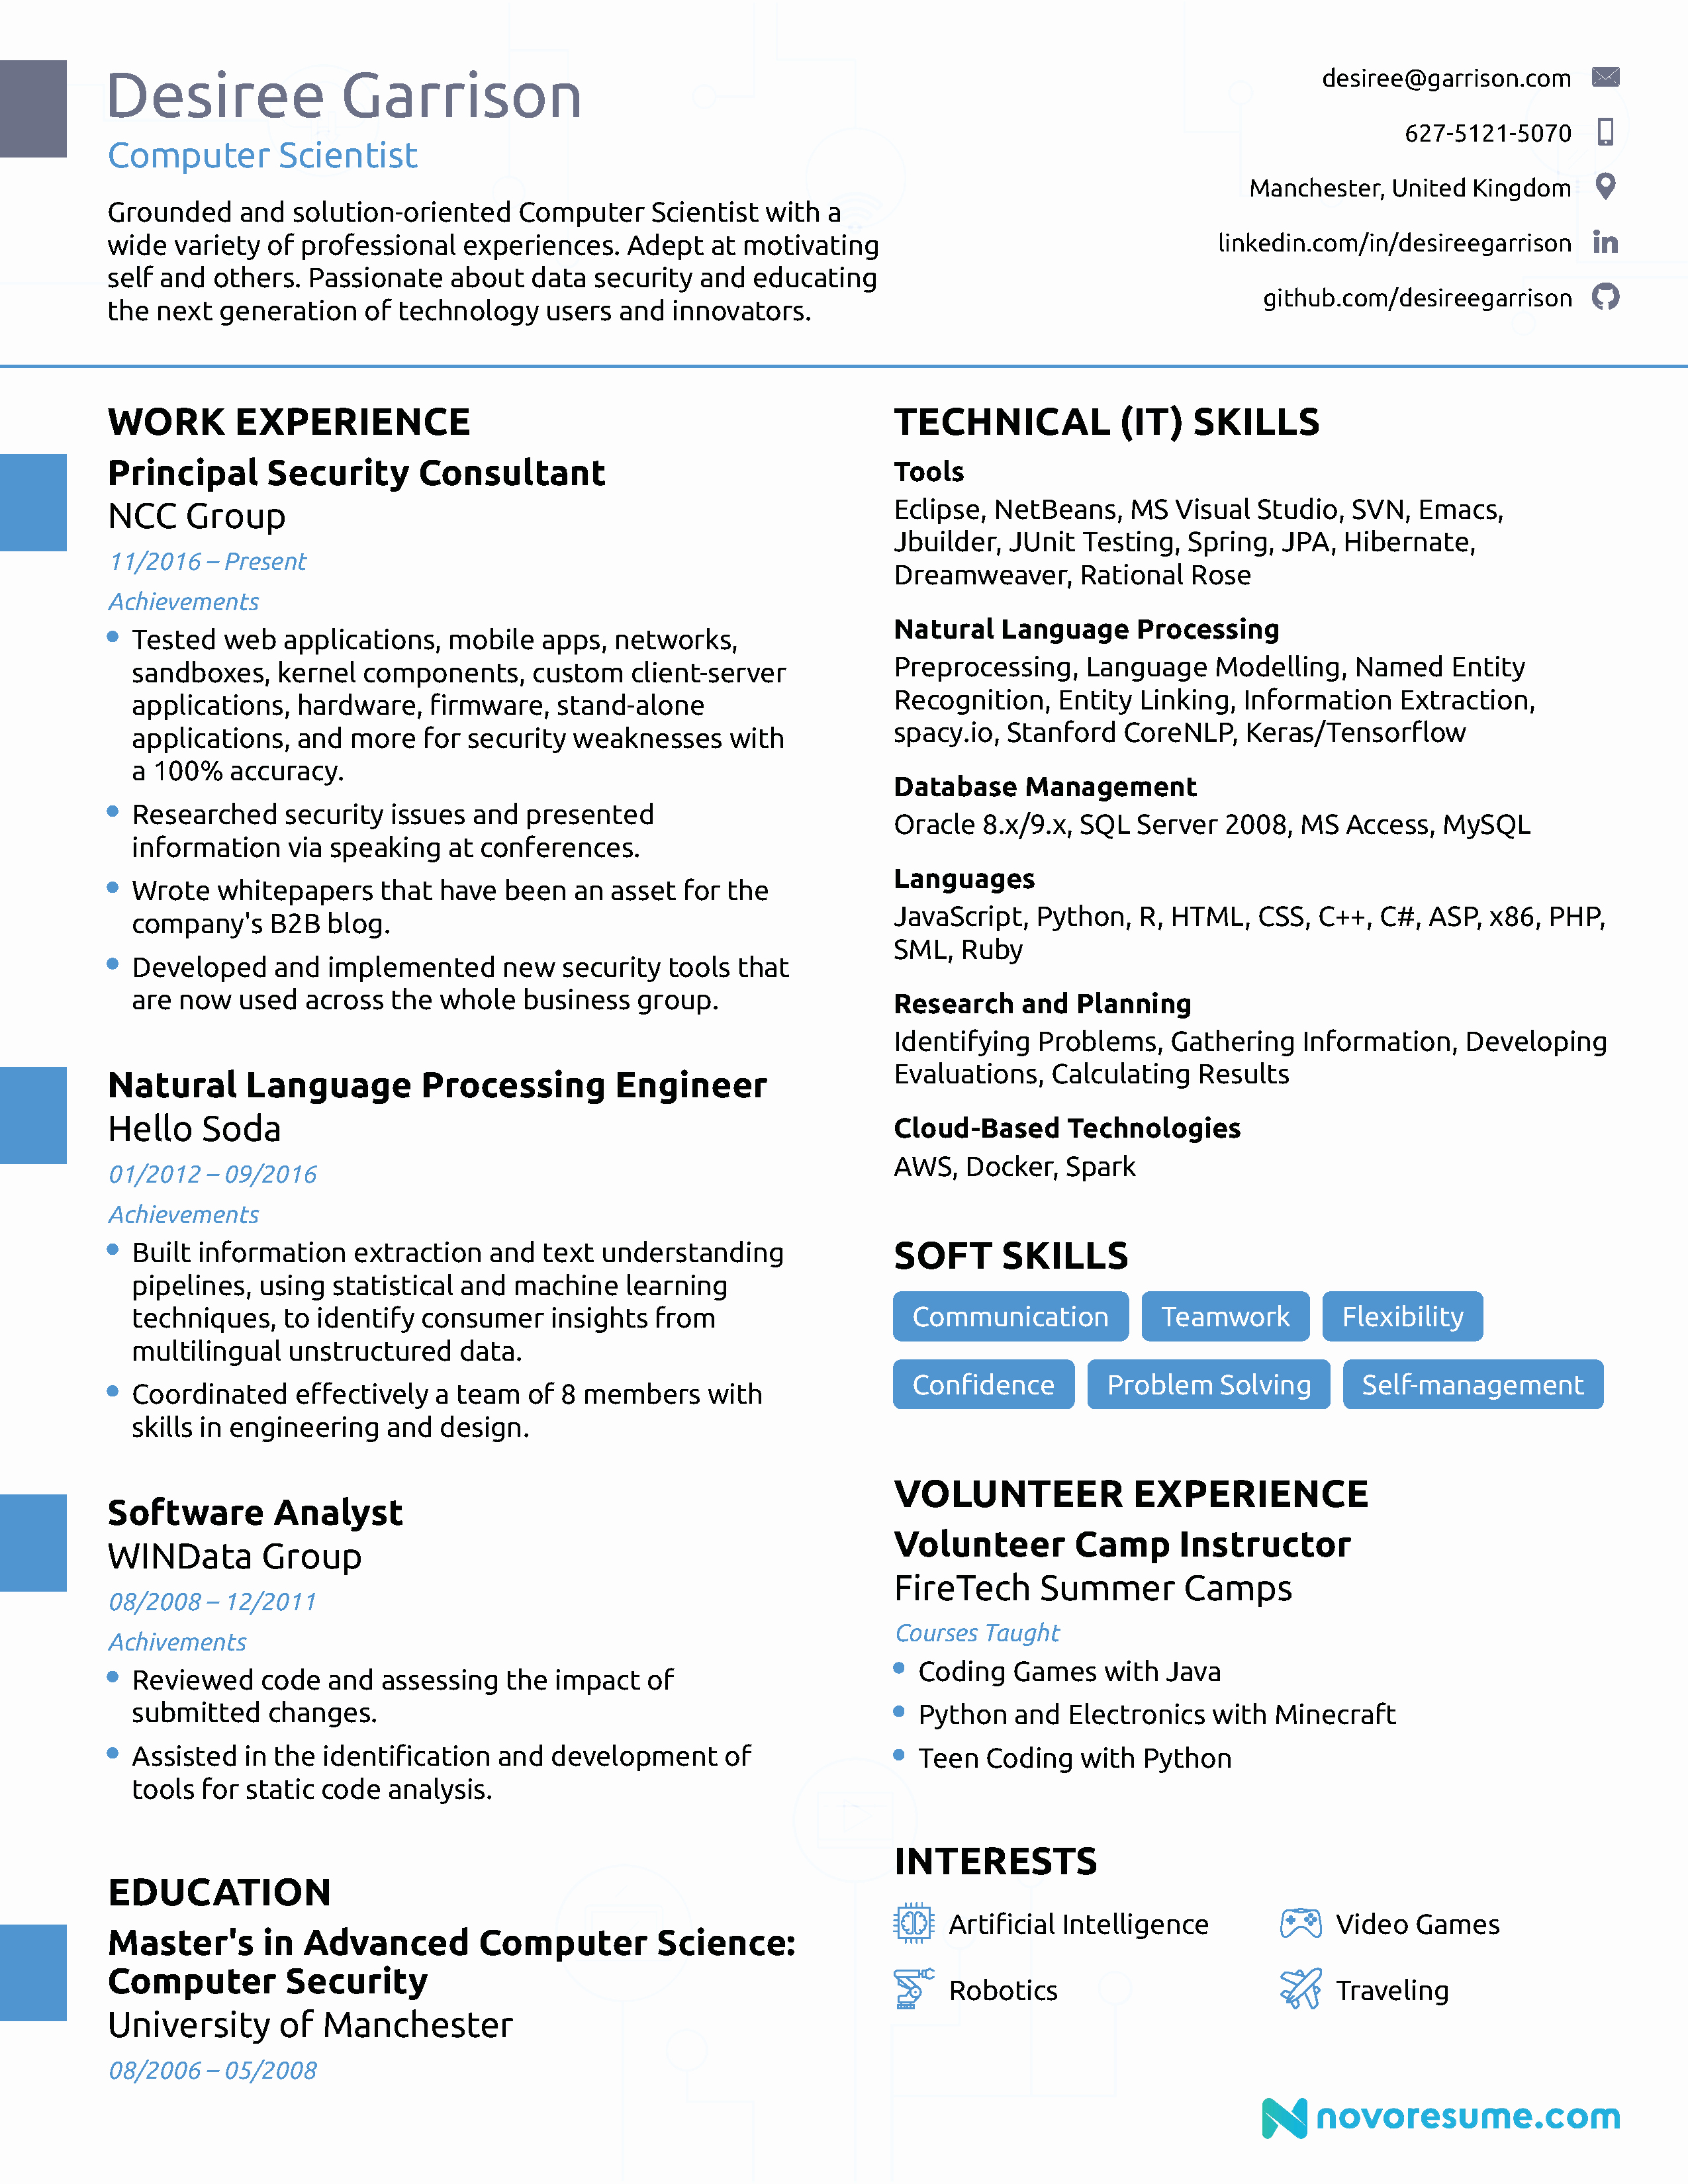 Puter Science Resume [2019] Guide & Examples